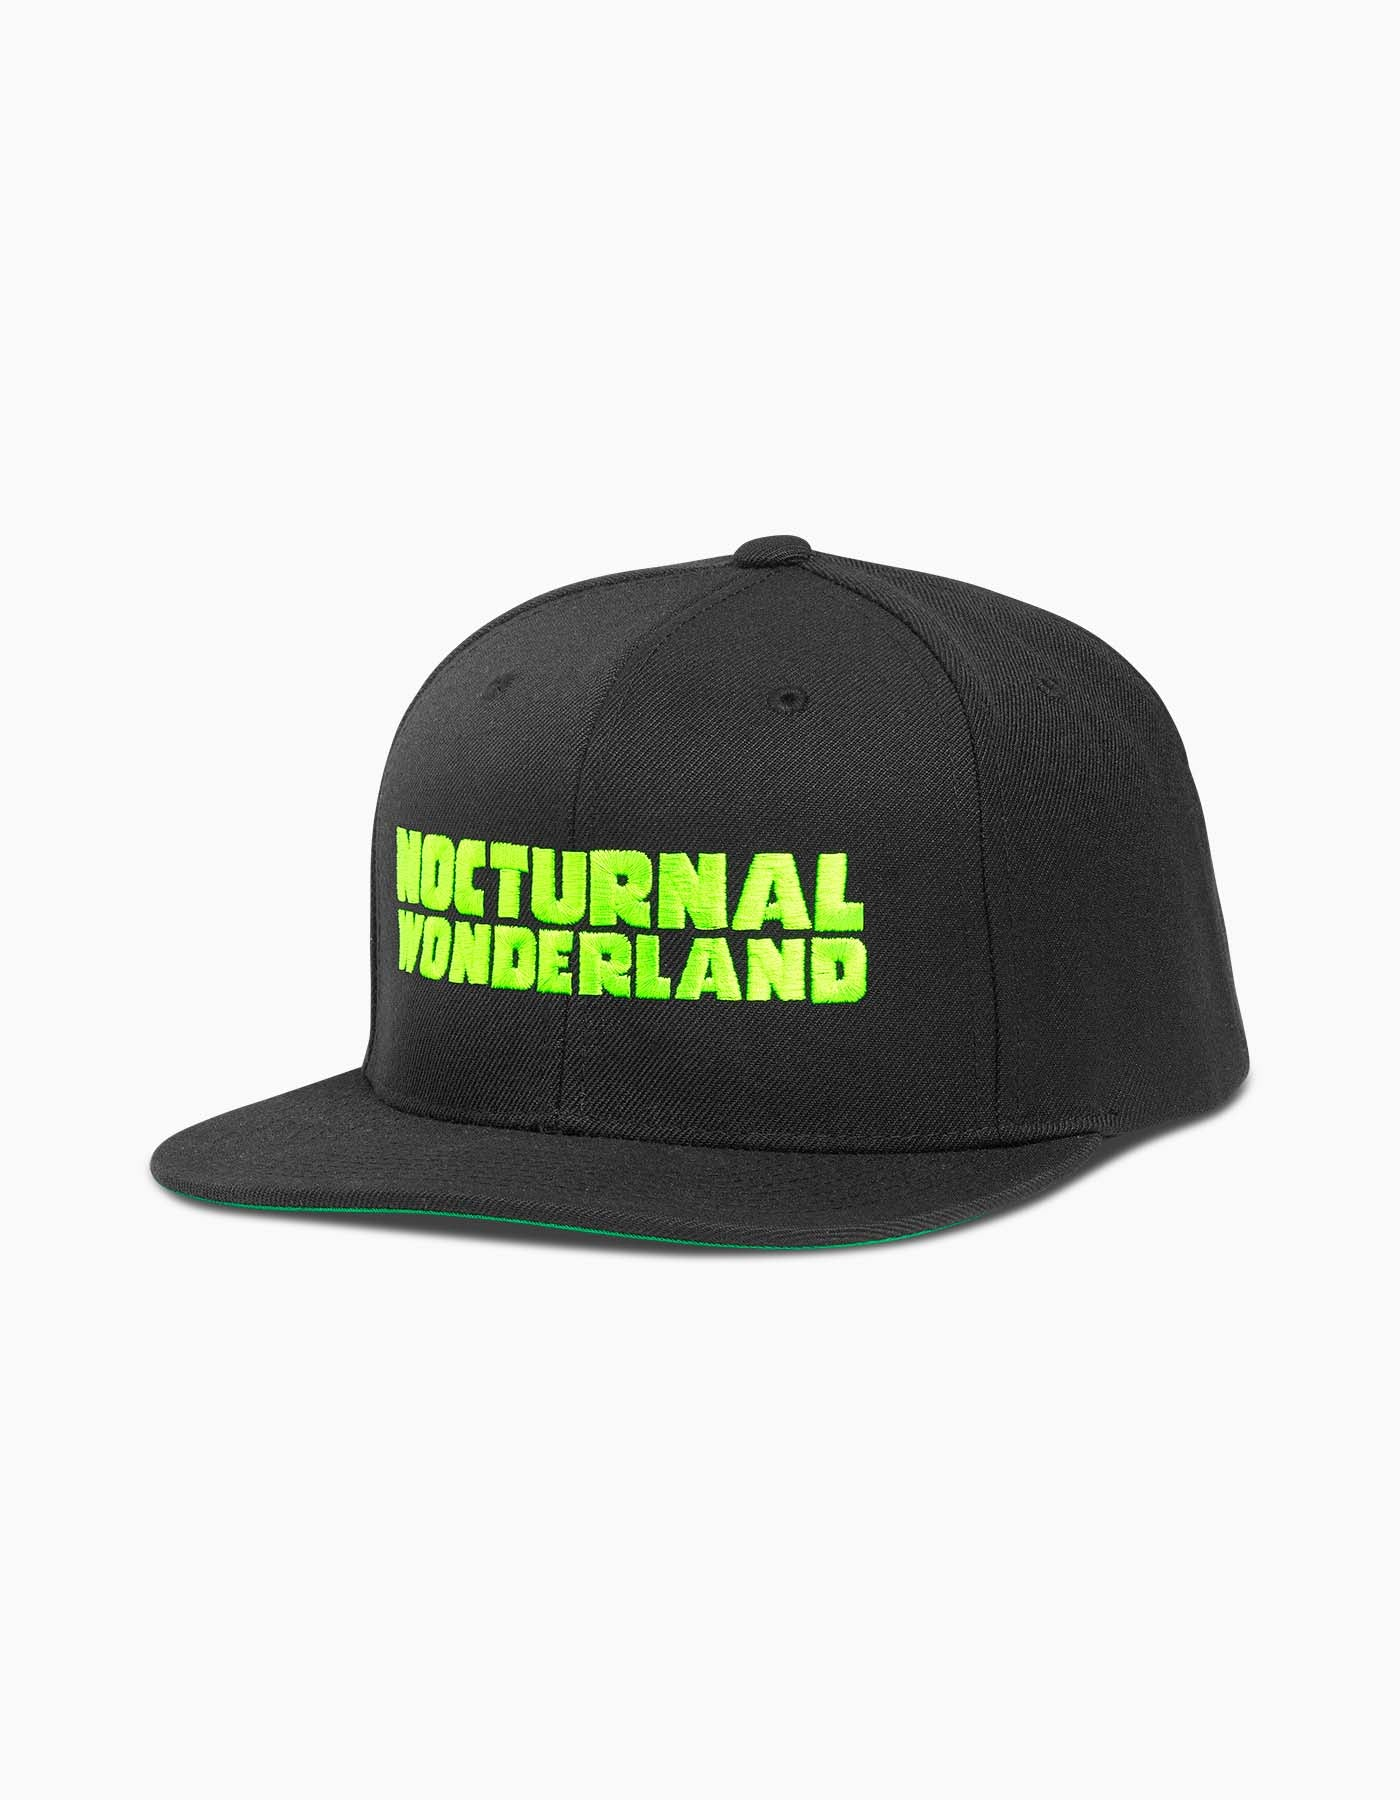 Nocturnal Block Snapback